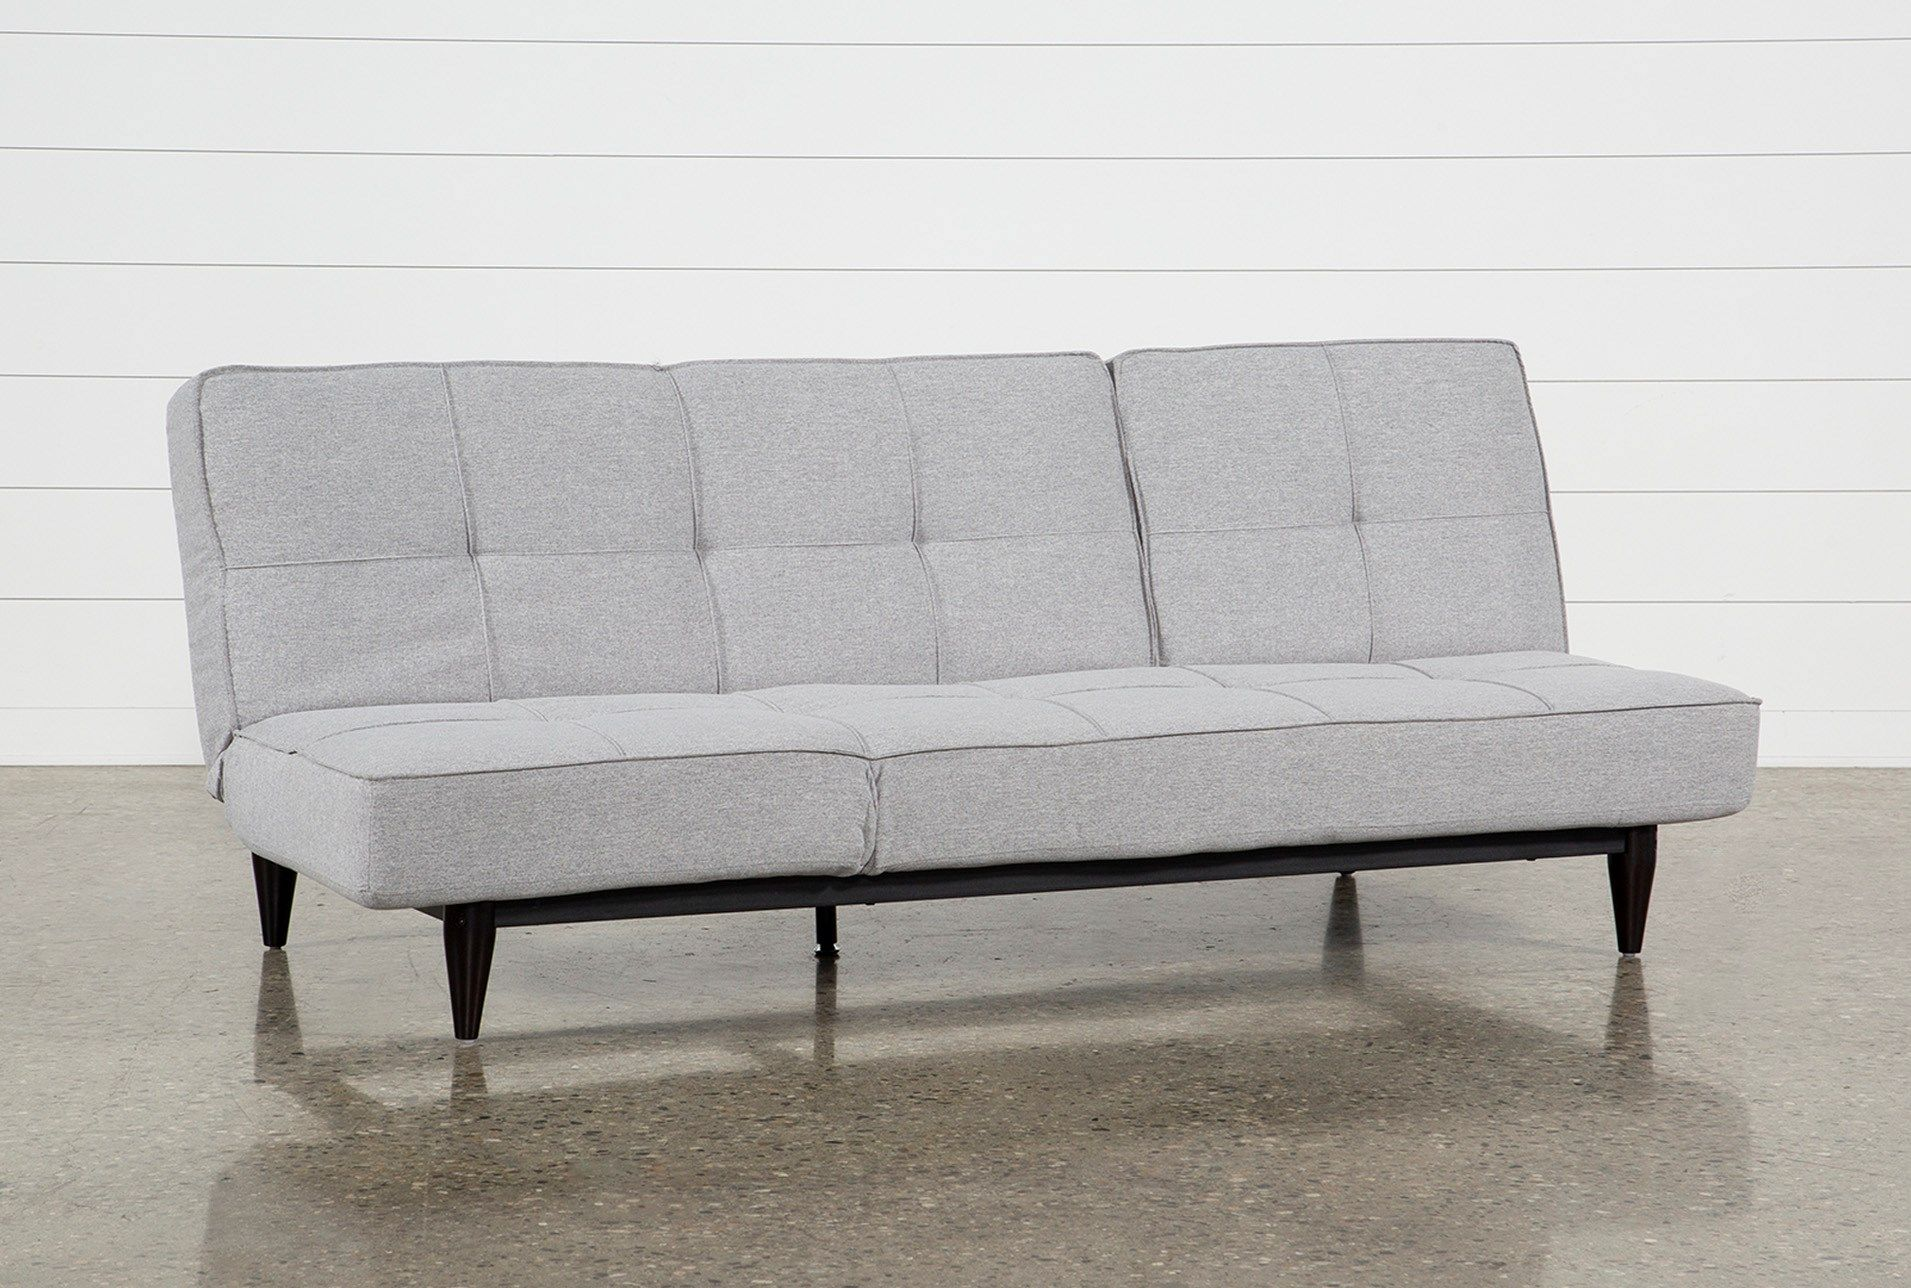 Paige Grey Convertible Sofa Chaise Sleeper Small Chaise Sofa Convertible Sofa Chaise Sofa